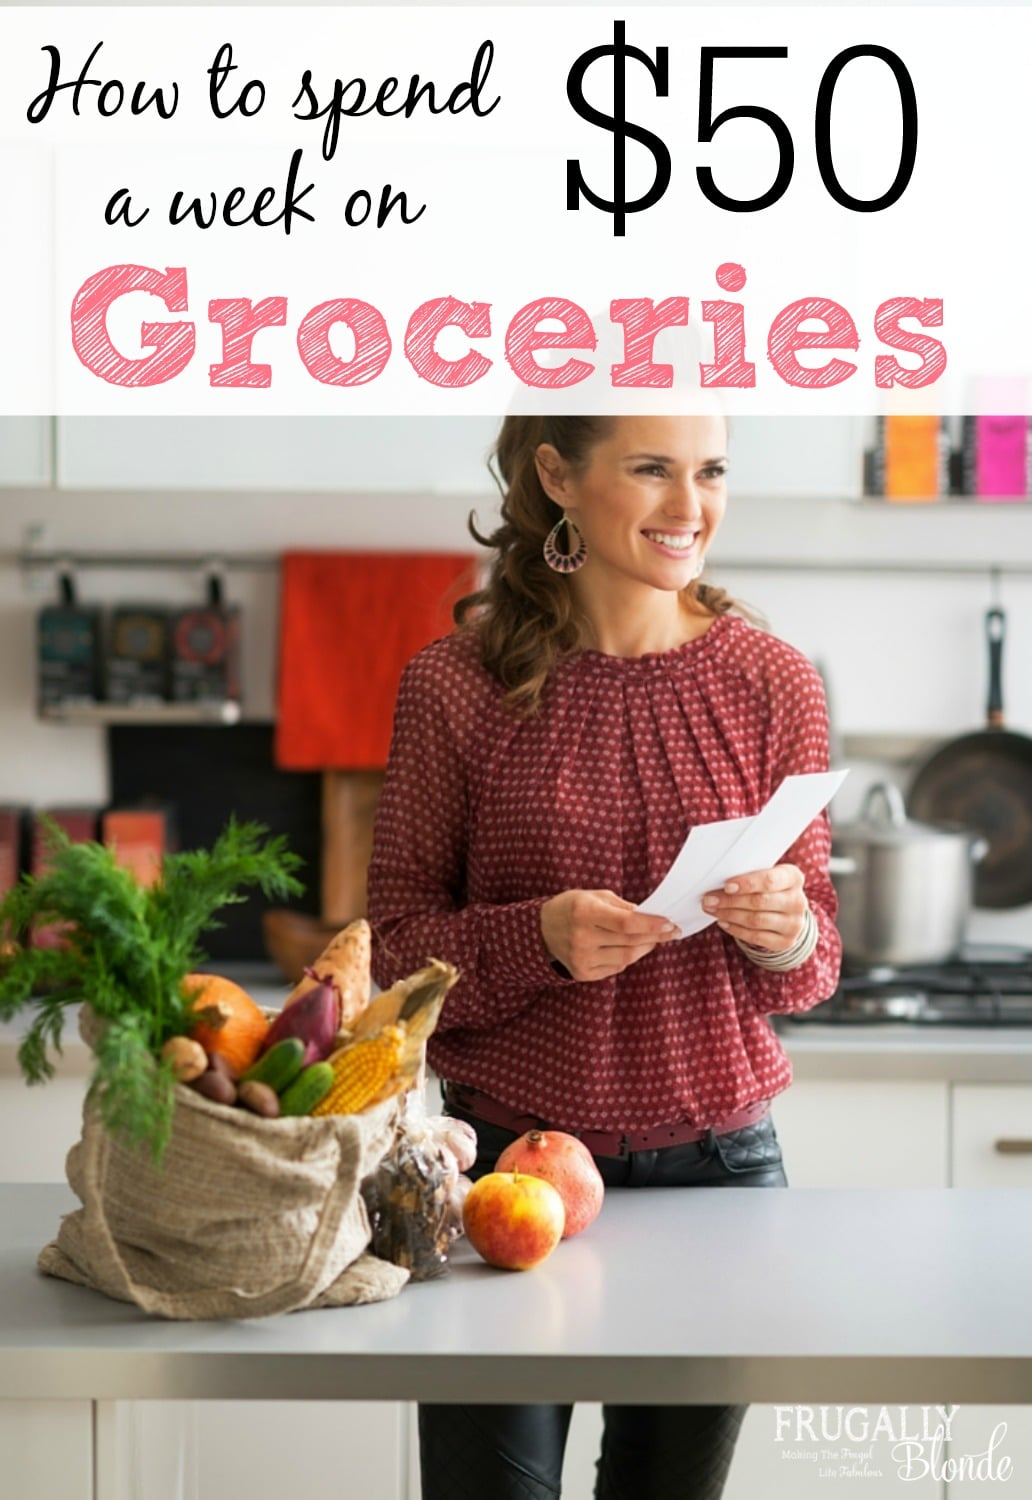 how to spend $50 a week on groceries